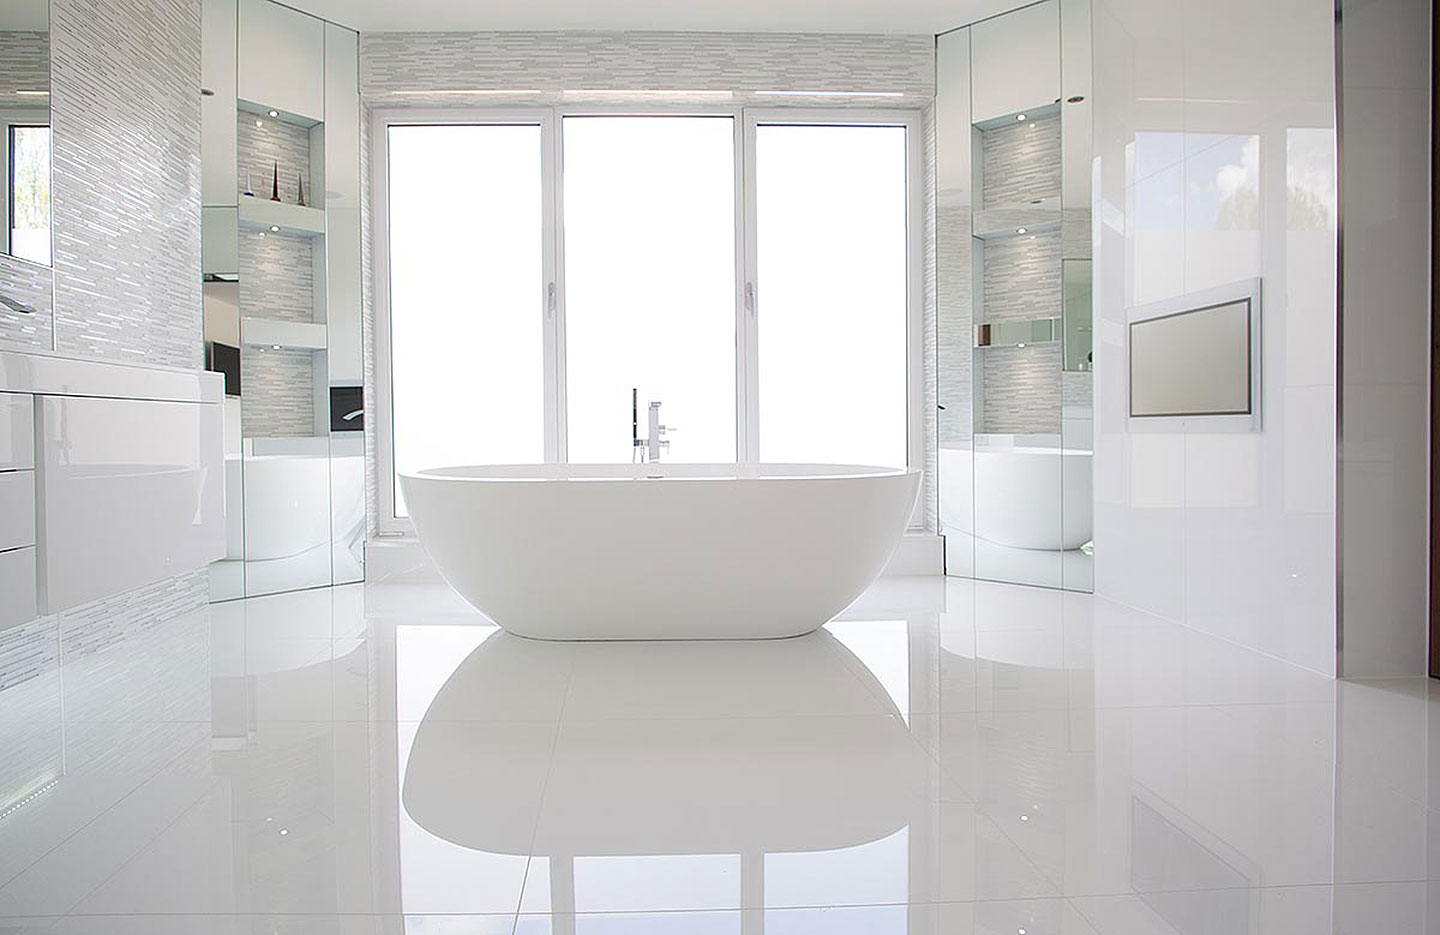 Hadley Wood - Master en-suite bathroom & cloakroom bathrooms | Tiles ...